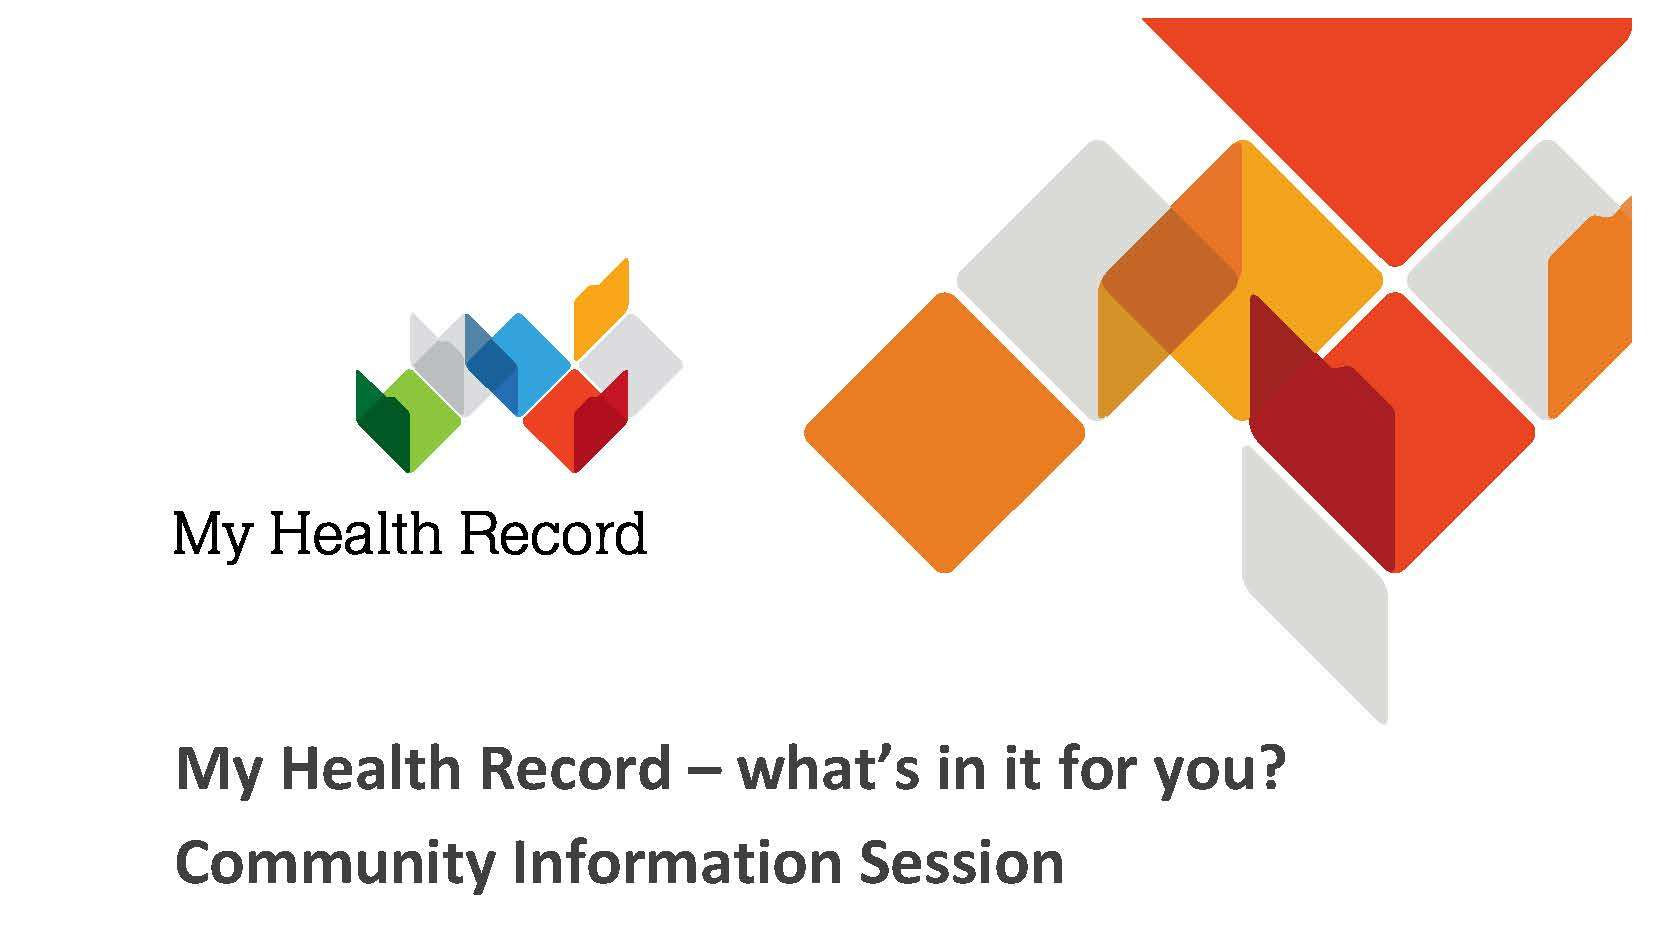 Image: My Health Record